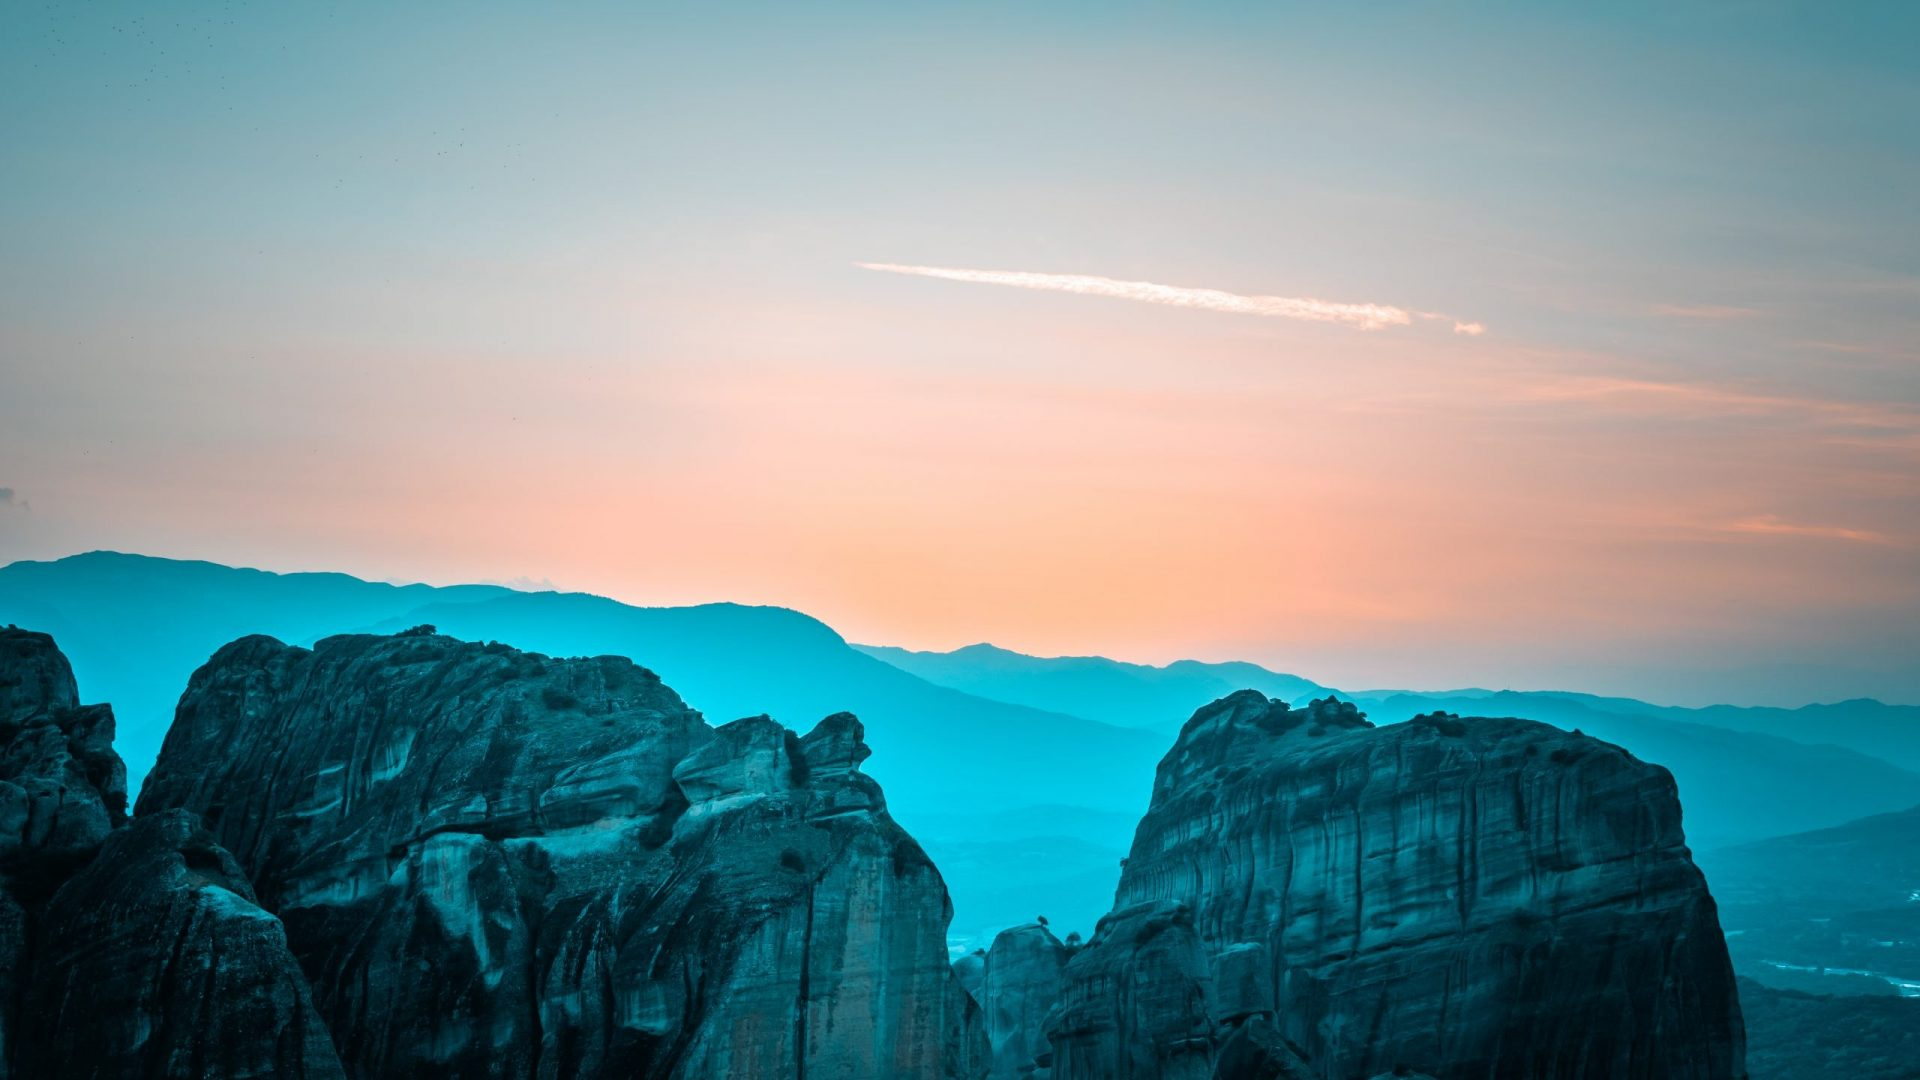 10 Travel Photography Tips - rule of thirds - sunset in Meteora, Greece